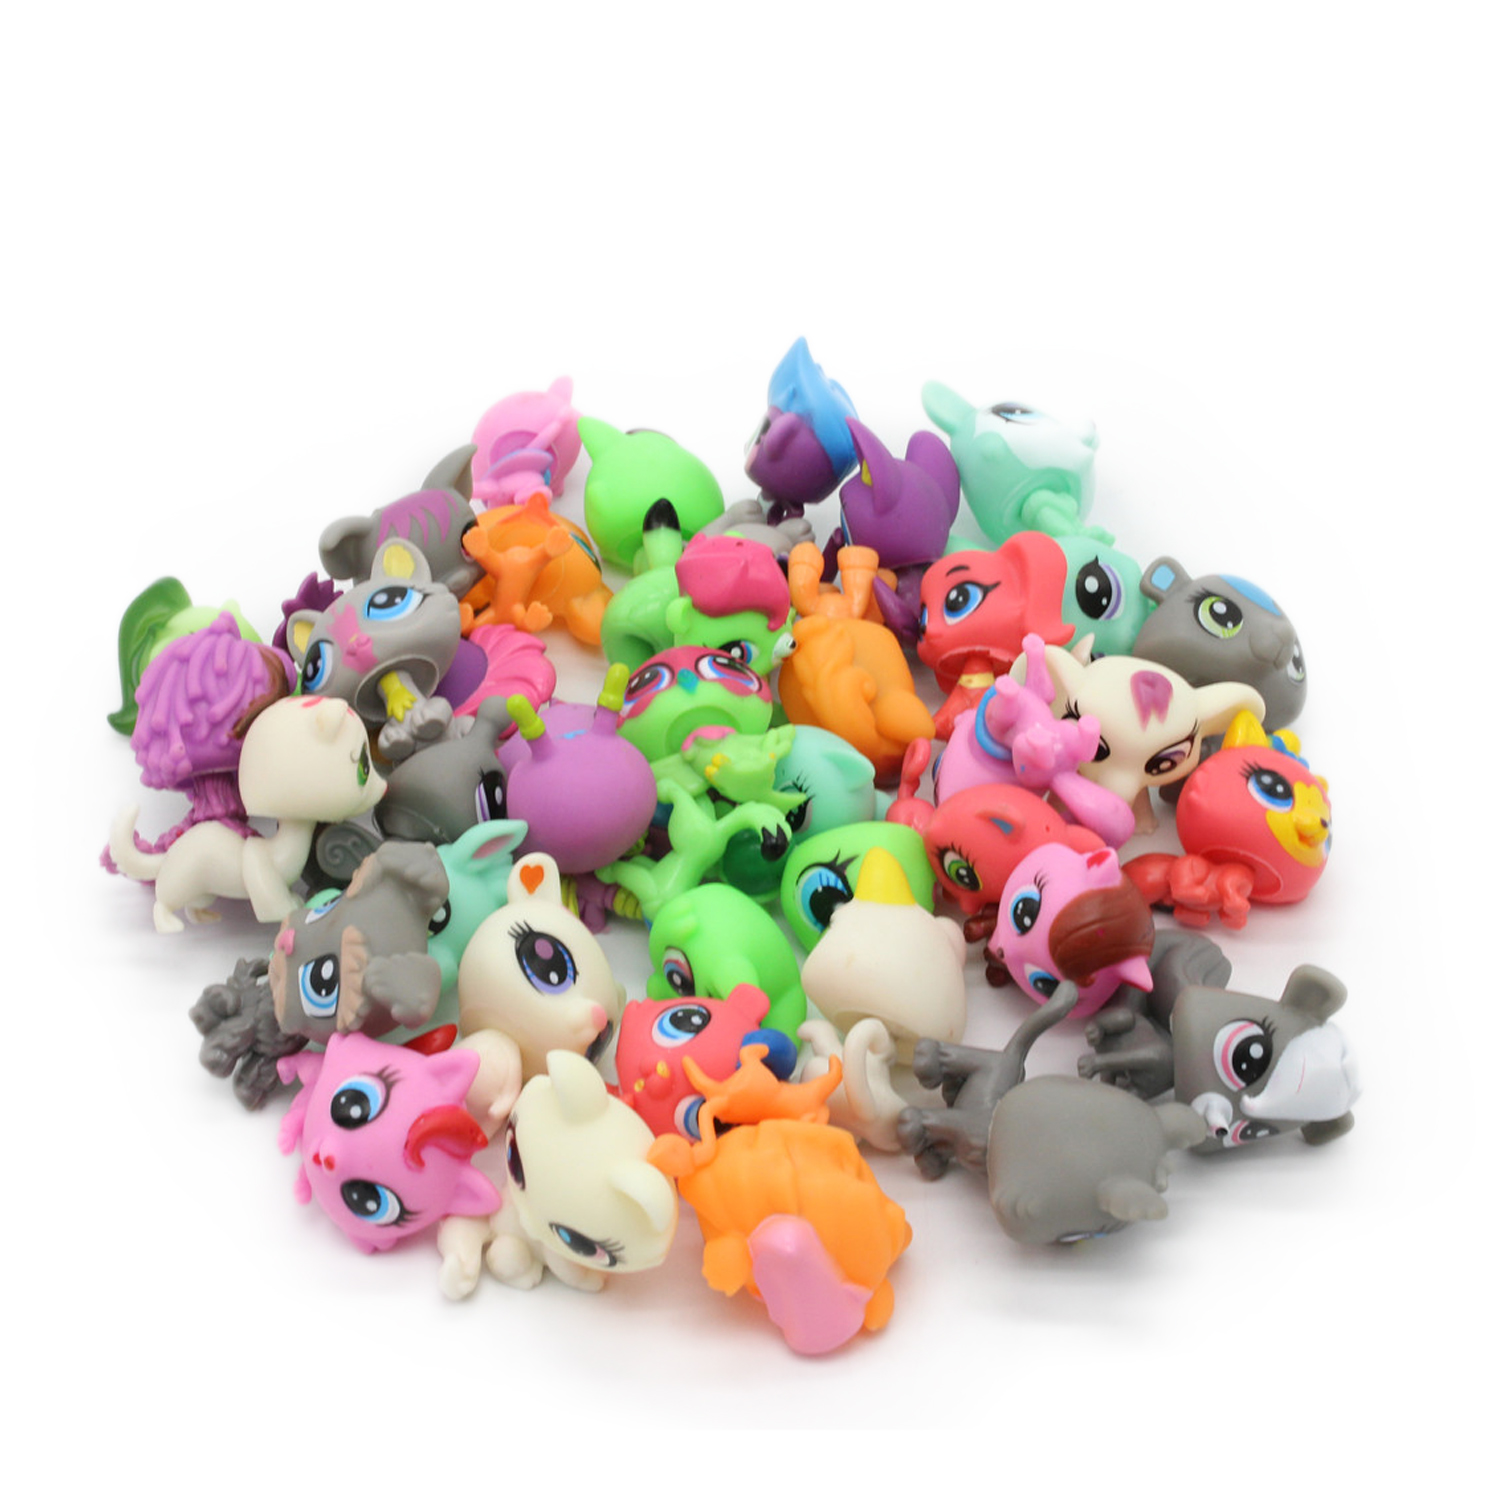 LPS New Style lps Toy bag 32Pcs/bag Little Pet Shop Mini Toy Animal Cat patrulla canina dog Action Figures Kids toys pet shop toys dachshund 932 bronw sausage dog star pink eyes